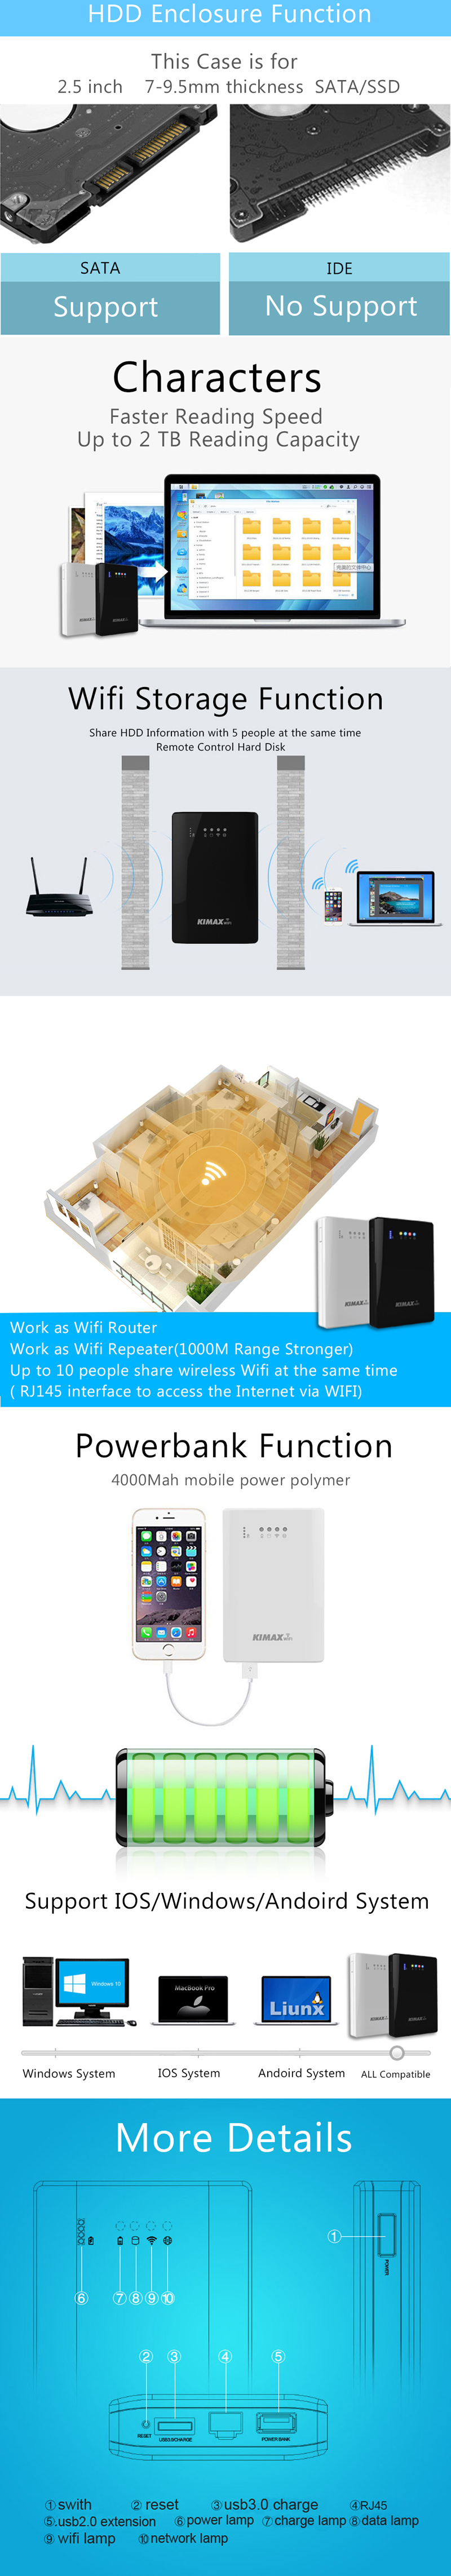 2.5 inch wifi hdd case 300mbps wireless router 4000mah powerbank 3 in 1 enclosure USB 3 (10)